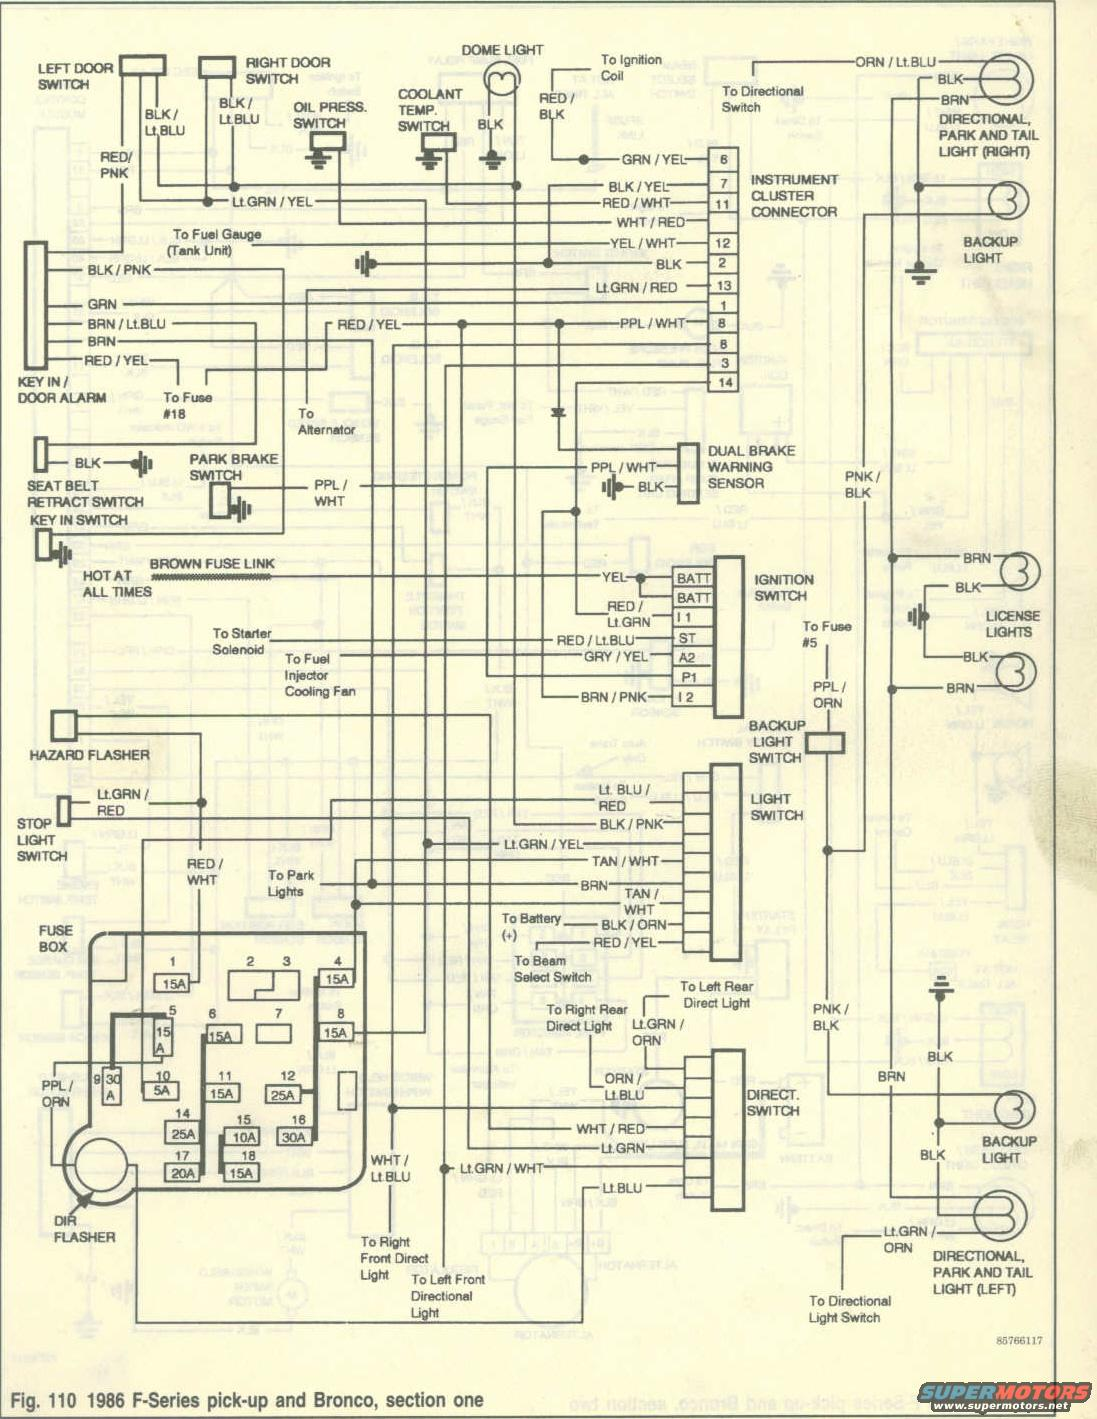 1986 ford bronco wiring diagram 86 data wiring diagrams u2022 rh mikeadkinsguitar com wiring diagram for 1984 ford bronco ii 1984 ford bronco 2 wiring diagram